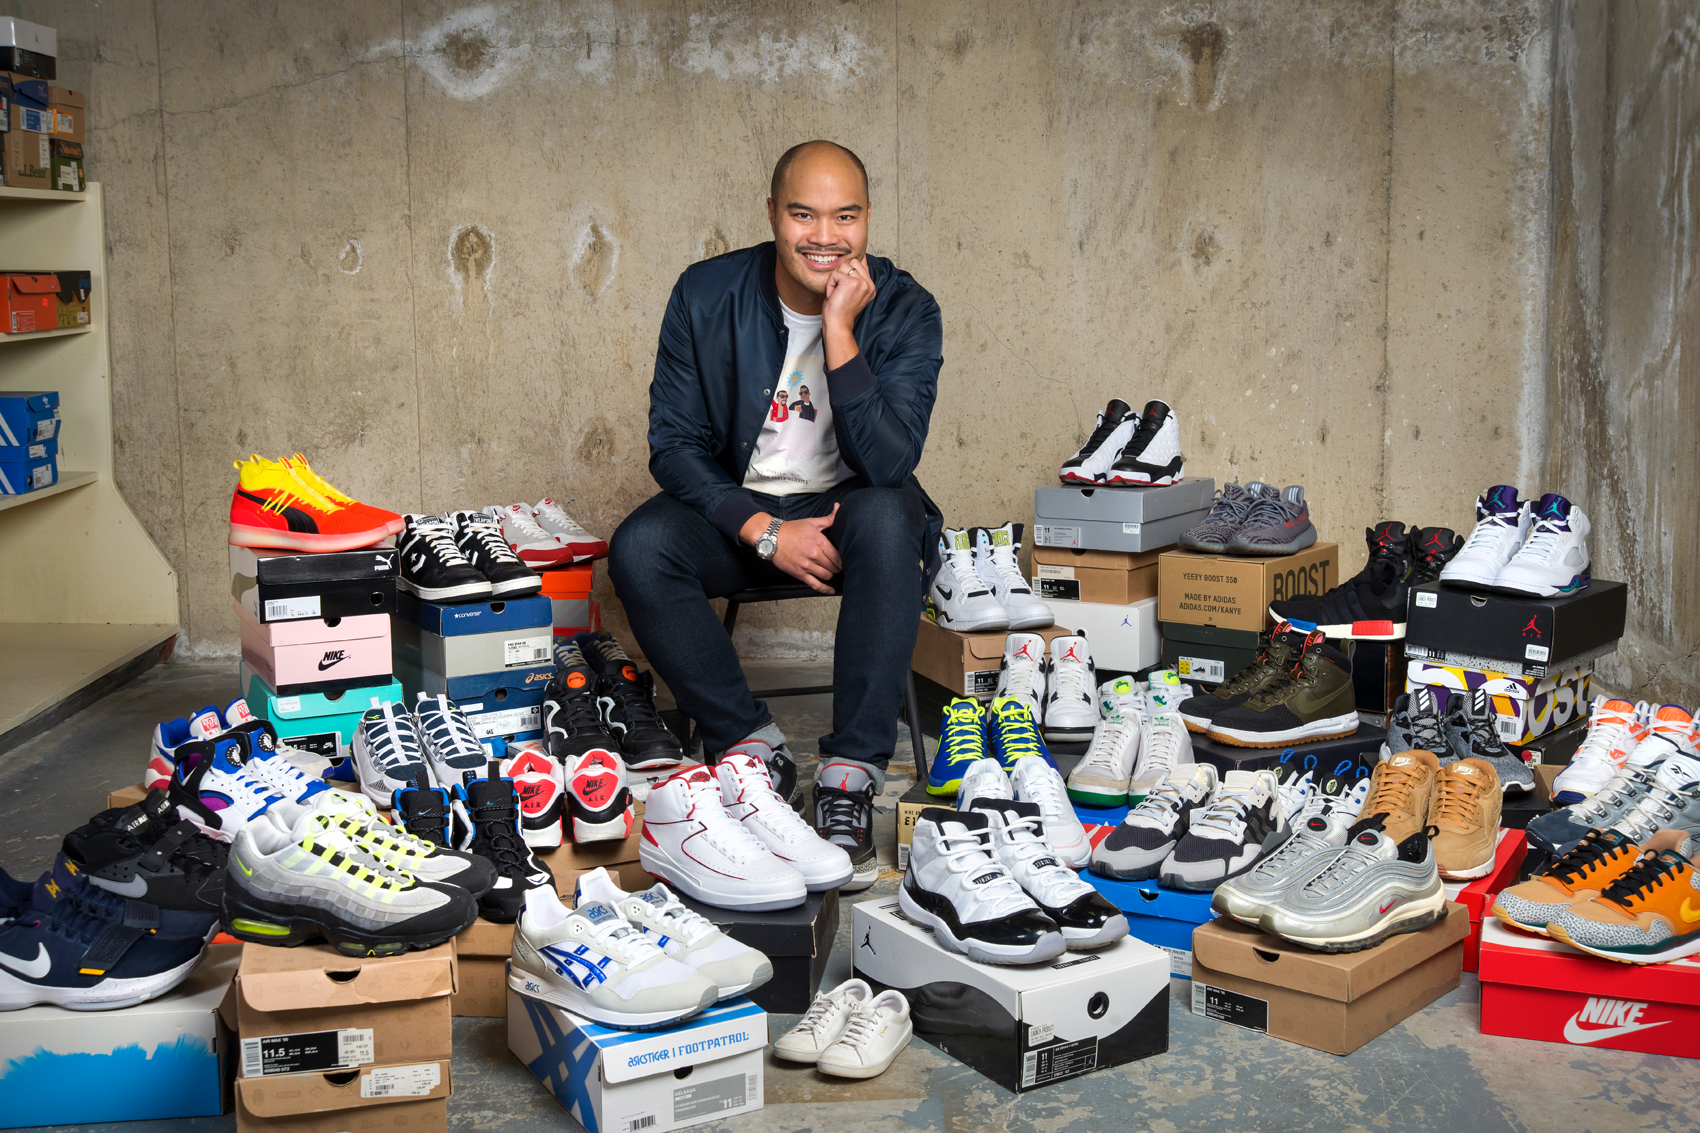 By his estimate, Pulga has between 80 and 90 pairs of basketball sneakers. Some, he admits, he has never worn. Photo by Trevor Hopkin